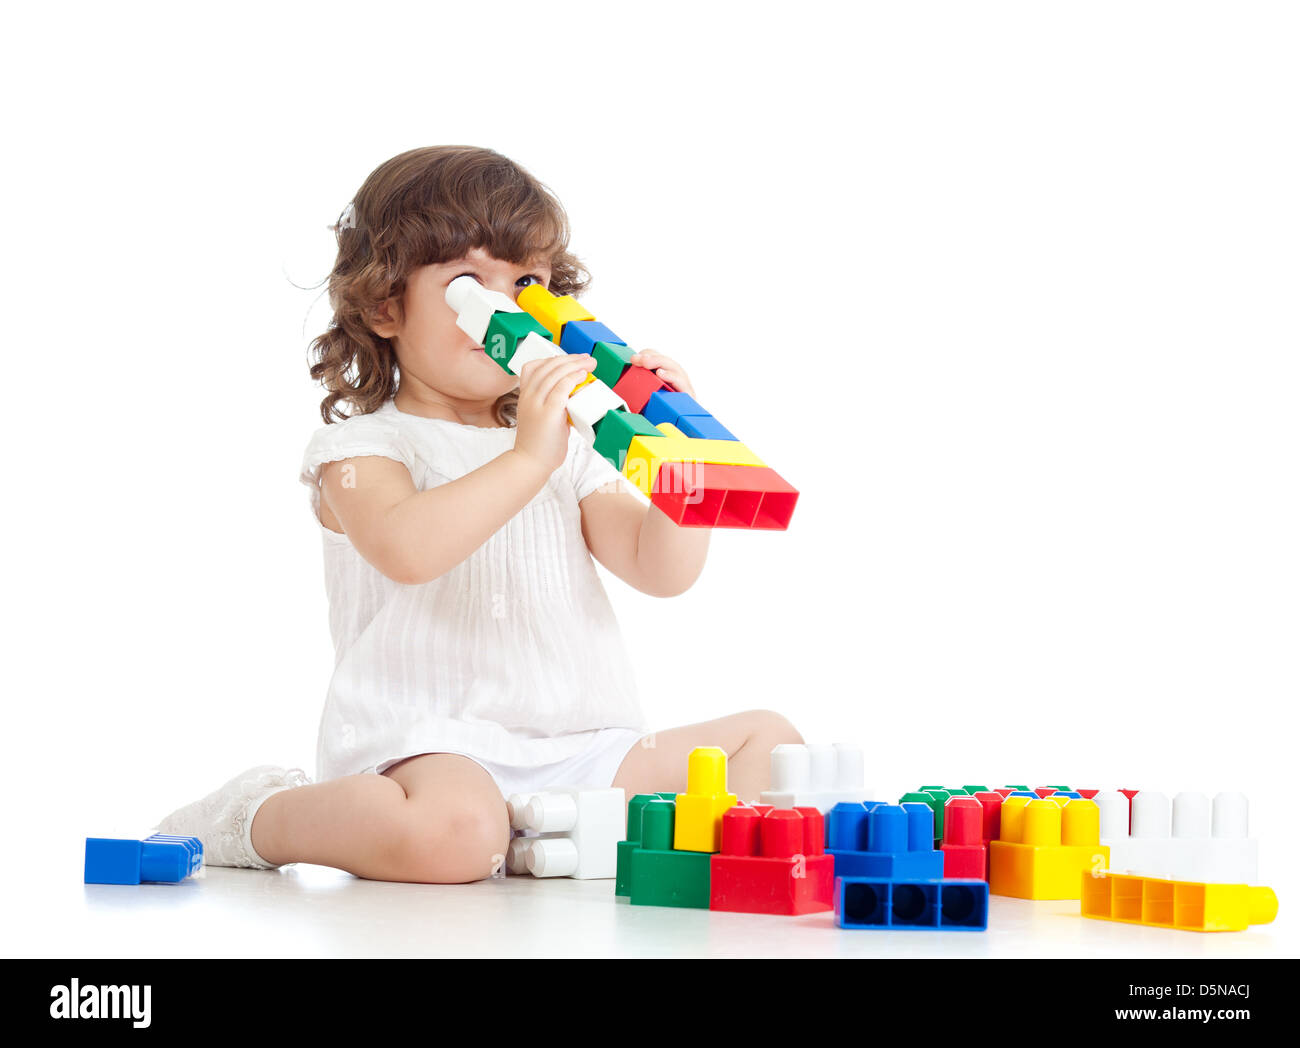 inventive kid with construction set toy over white background - Stock Image